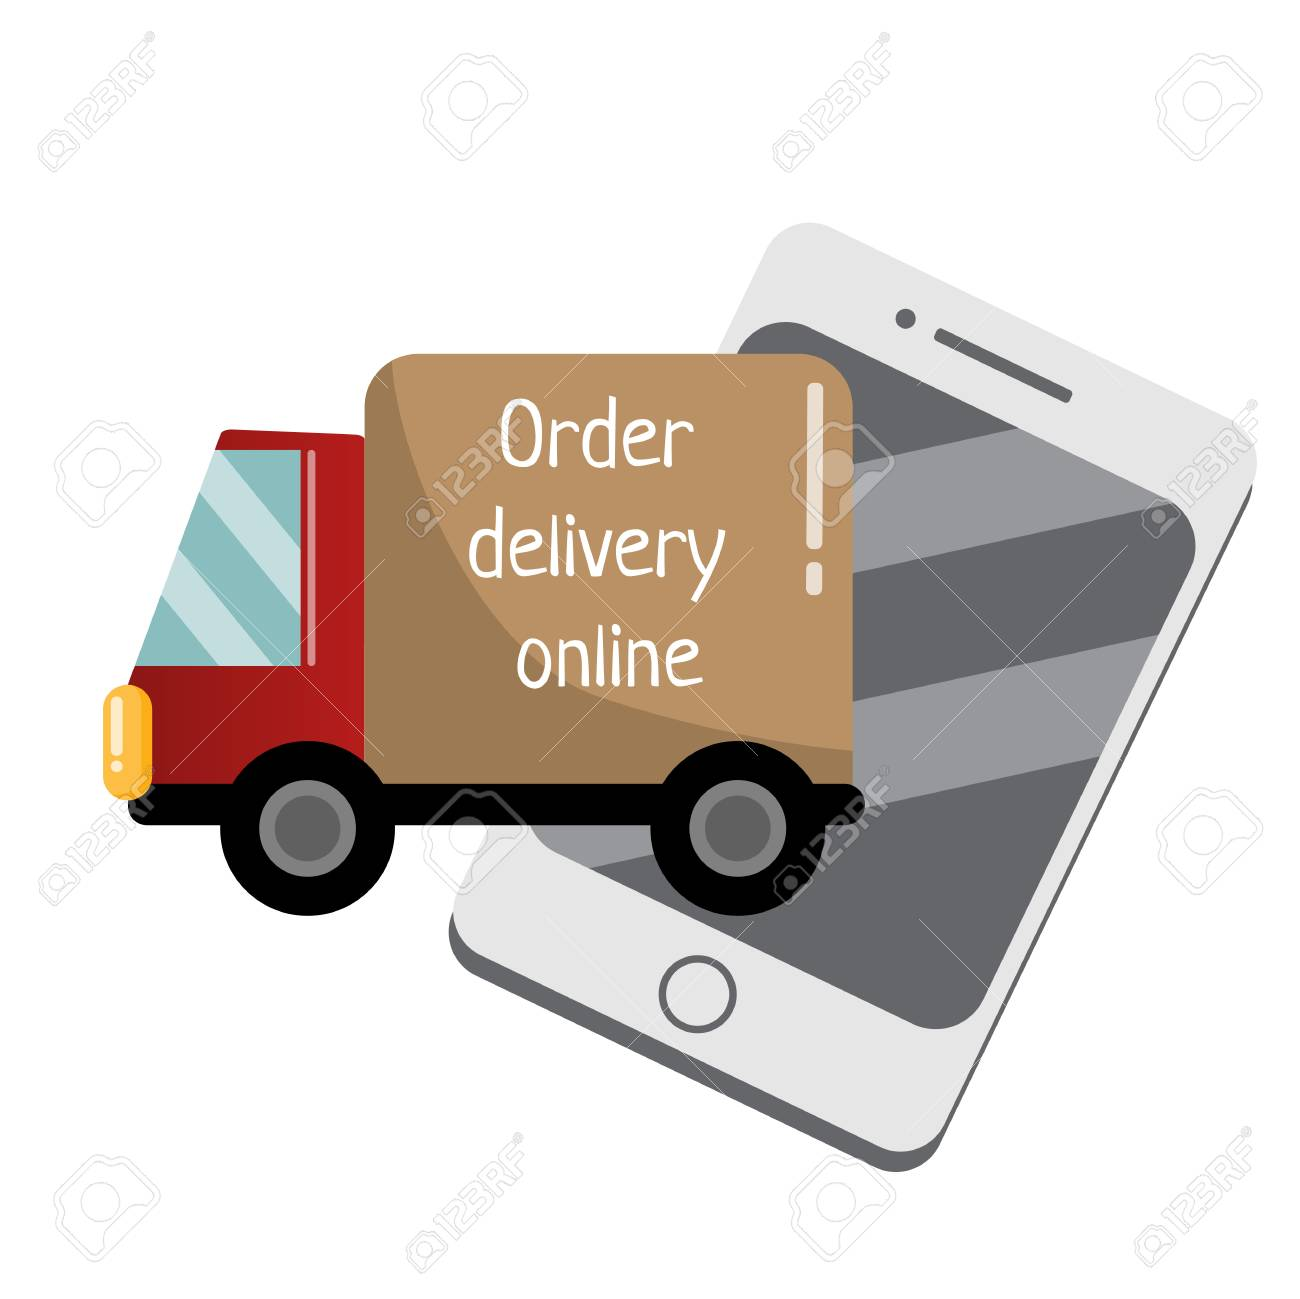 Flat delivery service truck and mobile phone meaning online delivery